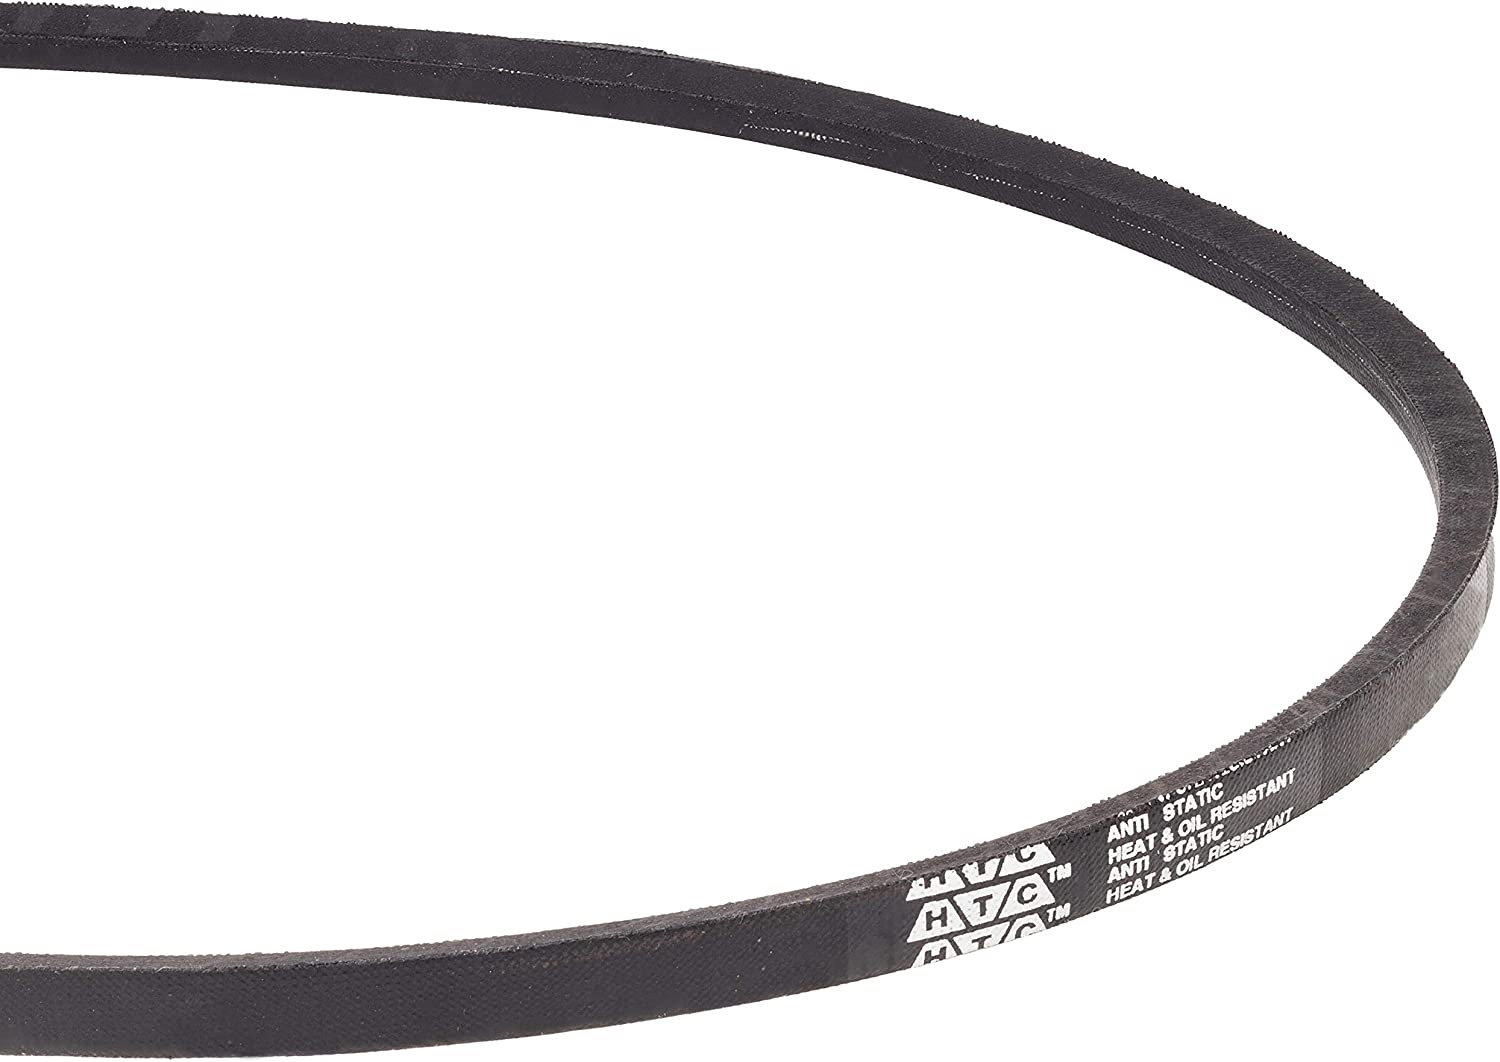 Outer Length 880mm HTC B33 Classical Wrapped V Belt 11mm x 17mm